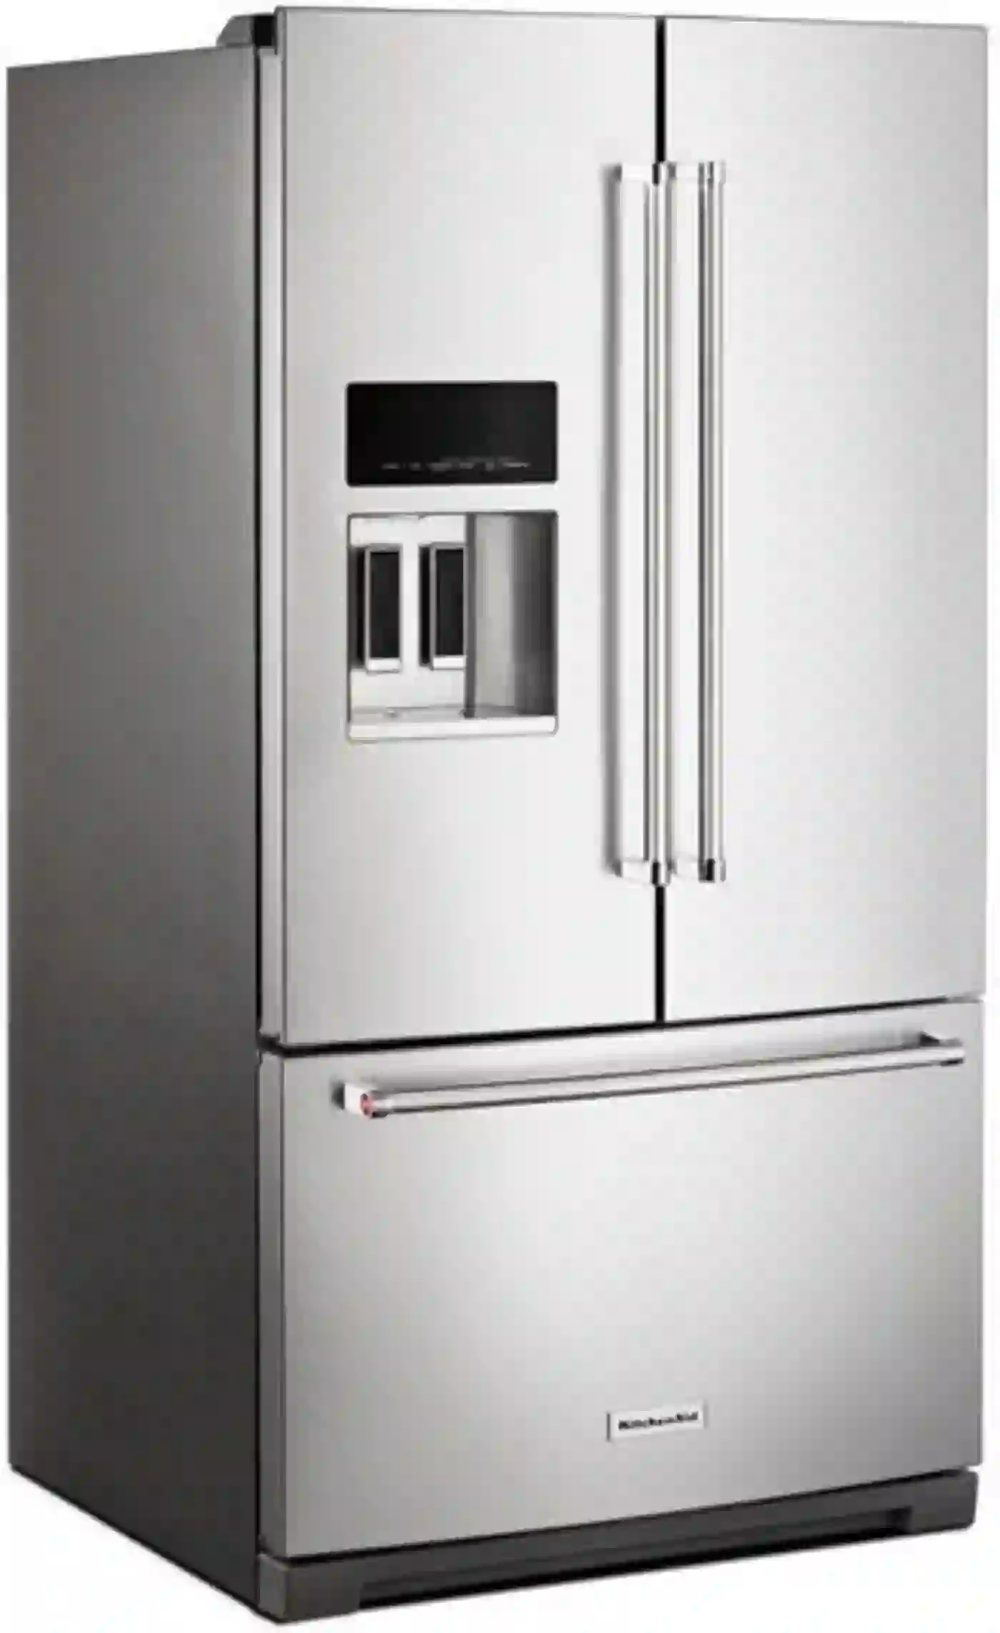 Krff507hps By Kitchenaid French Door Refrigerators Goedekers Com French Door Refrigerator Kitchen Aid French Doors